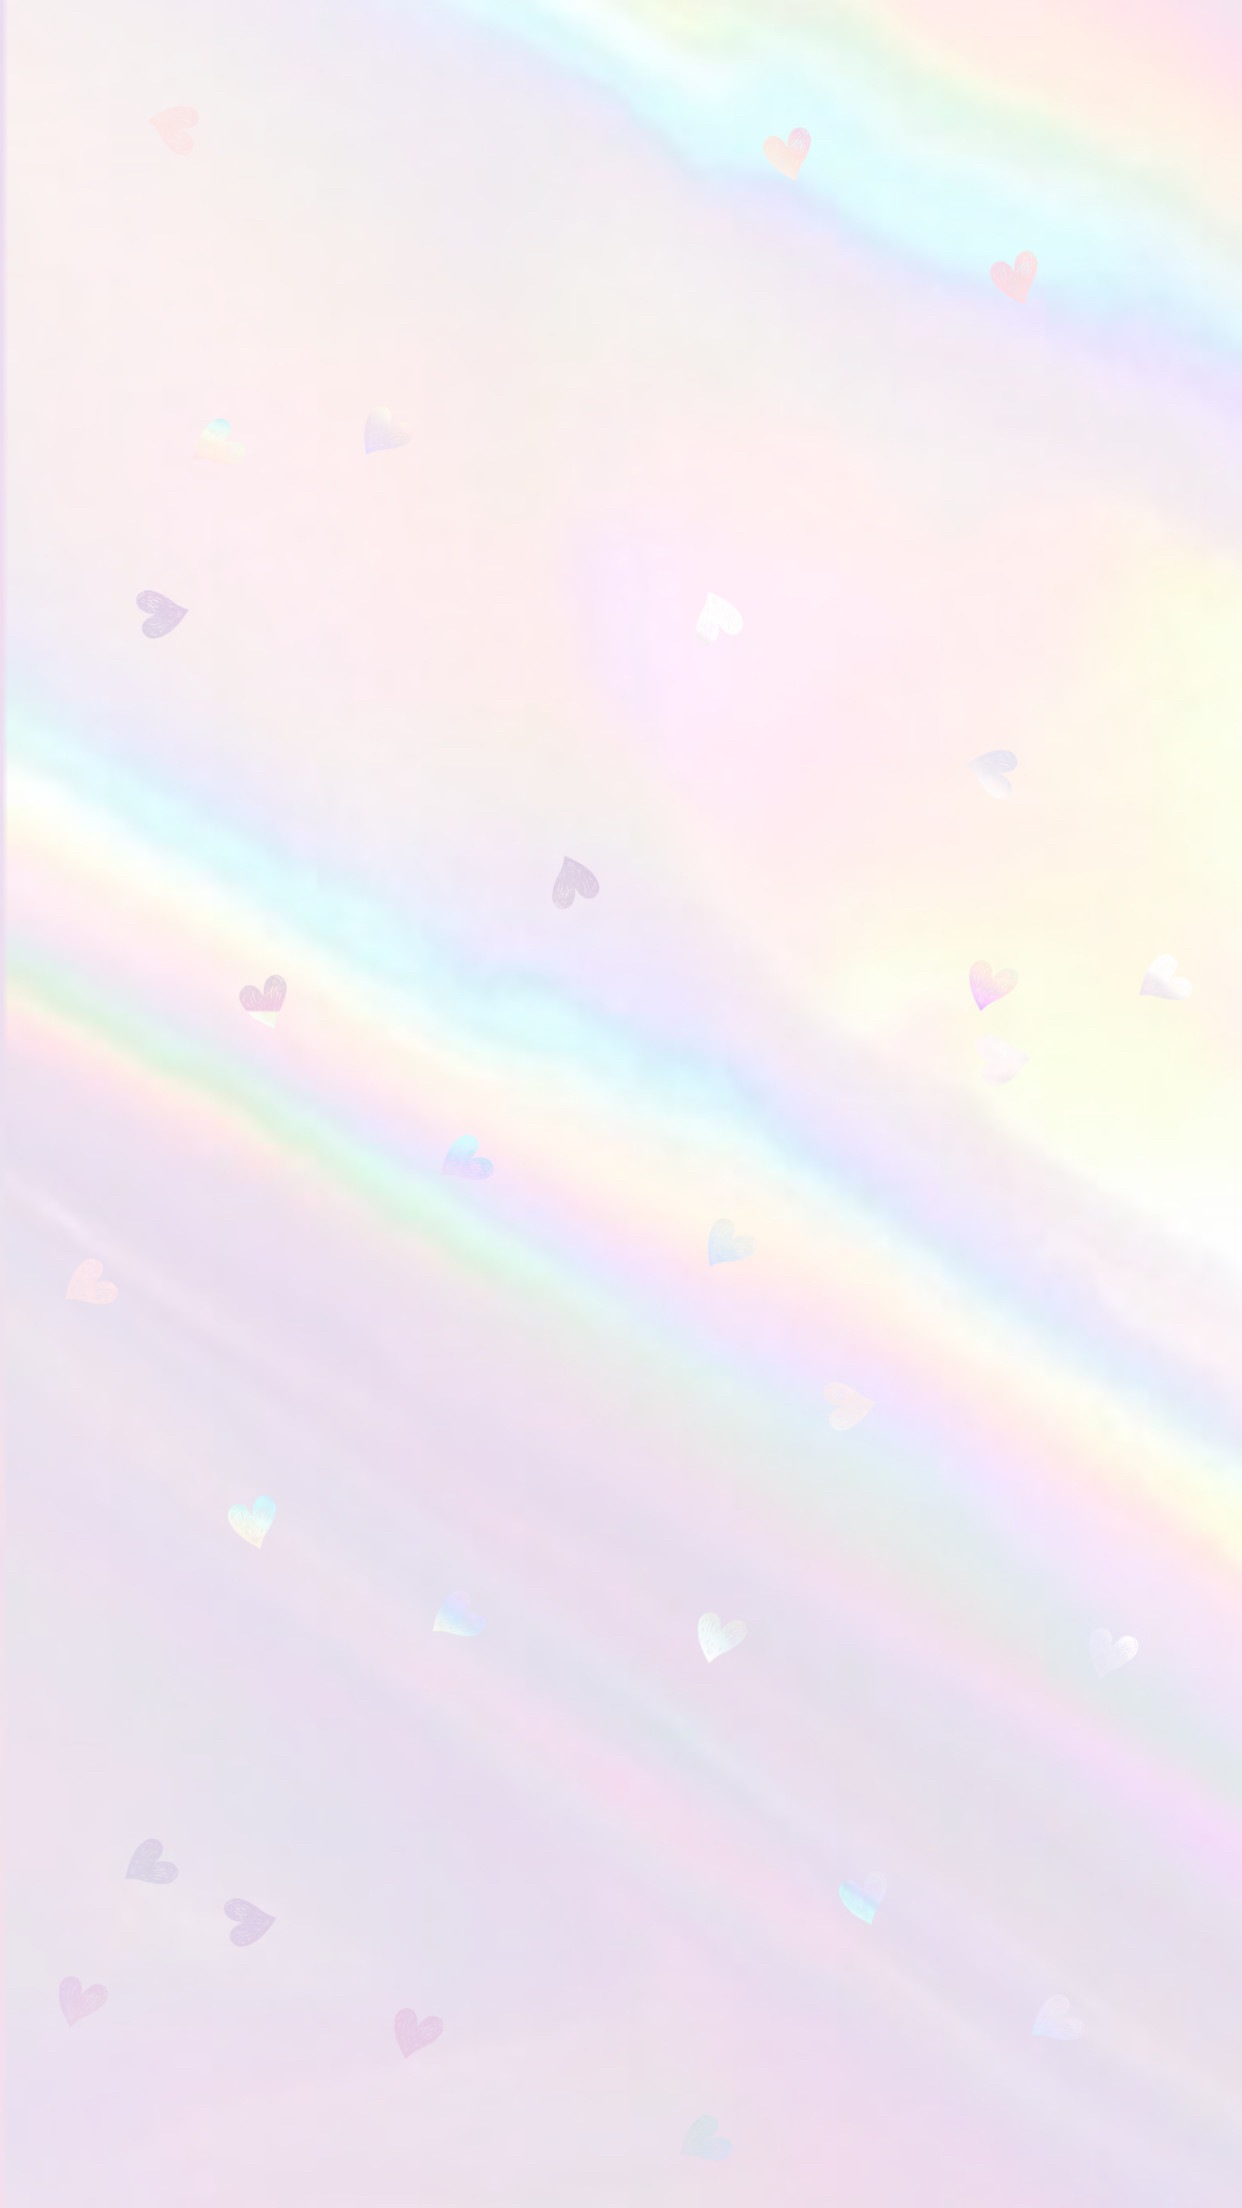 iridescent, wallpaper, background, hd, hologram, holographic